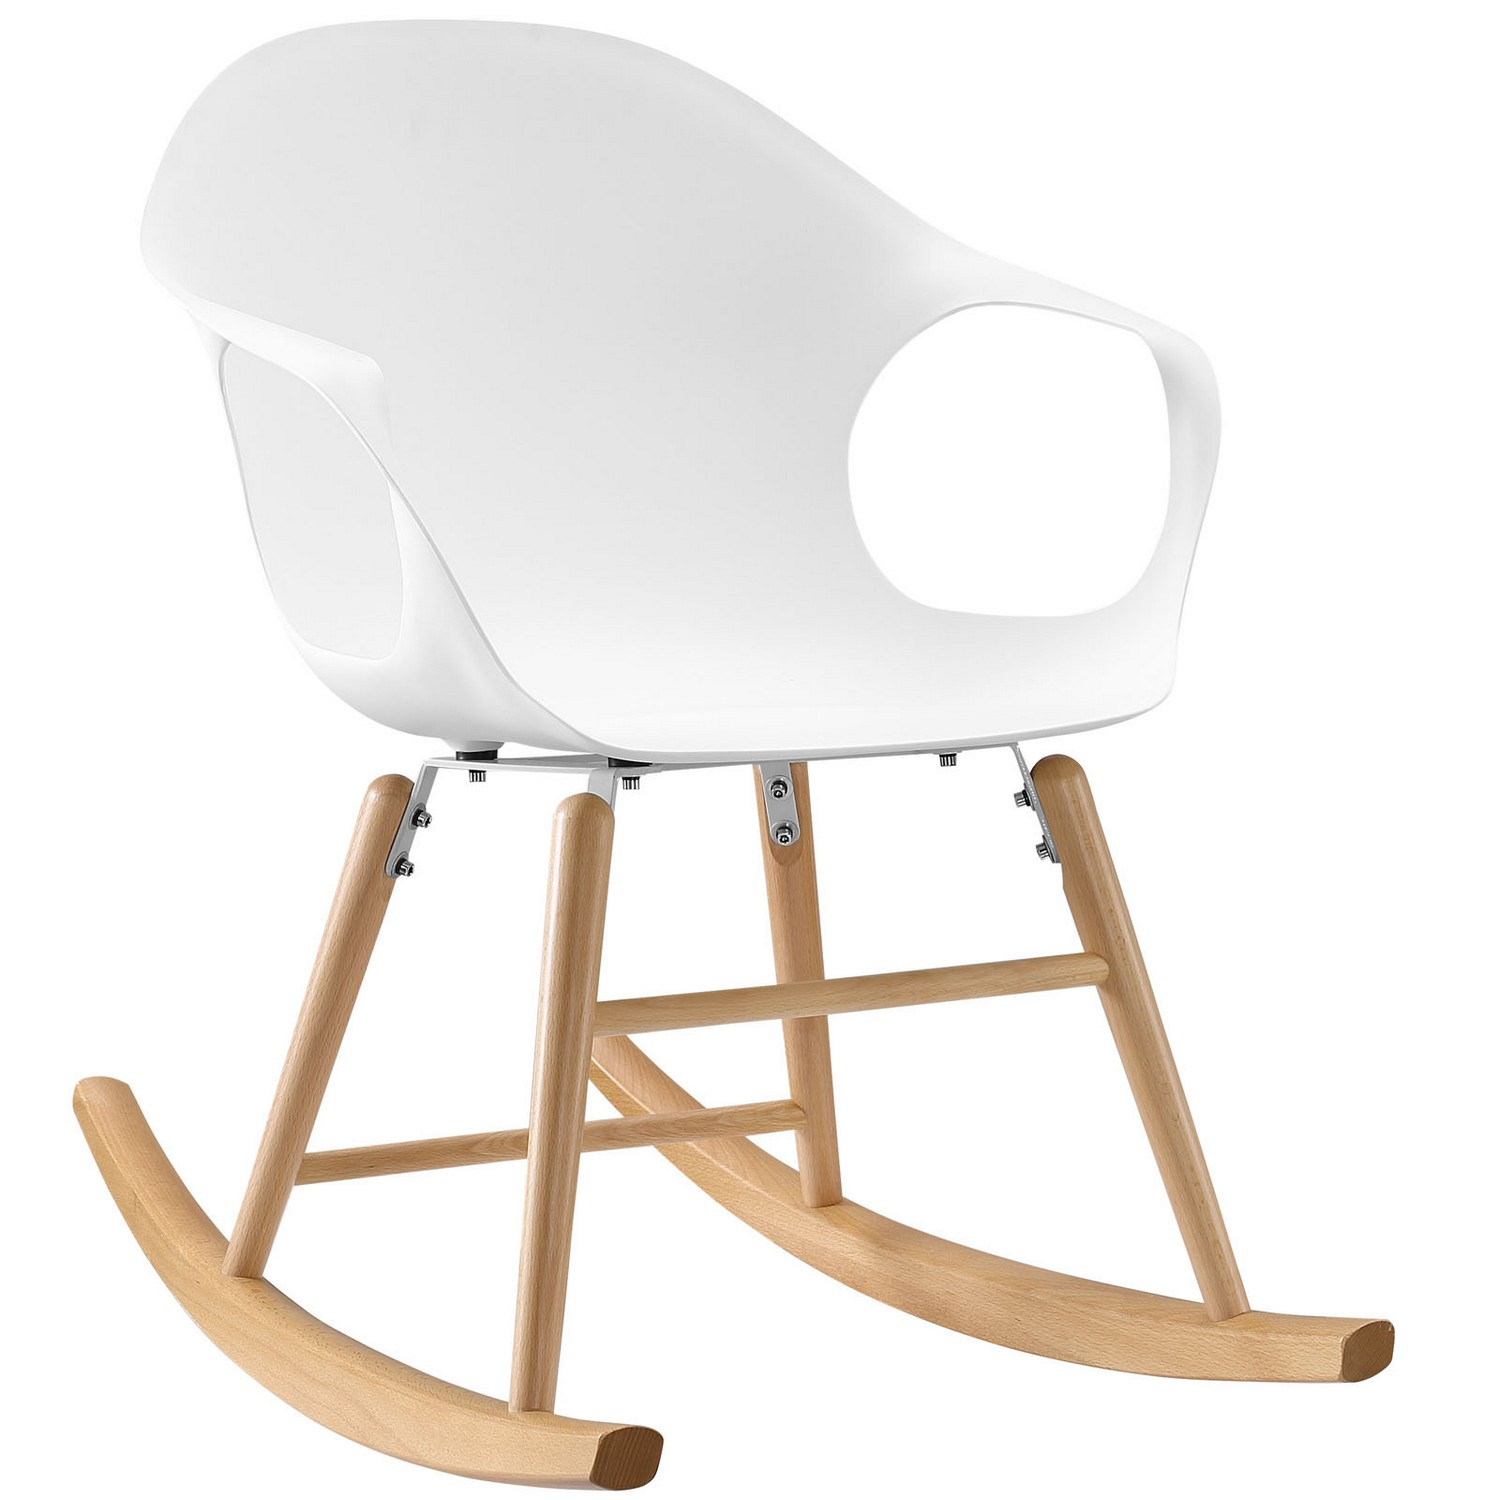 Modway Swerve Rocking Chair - White